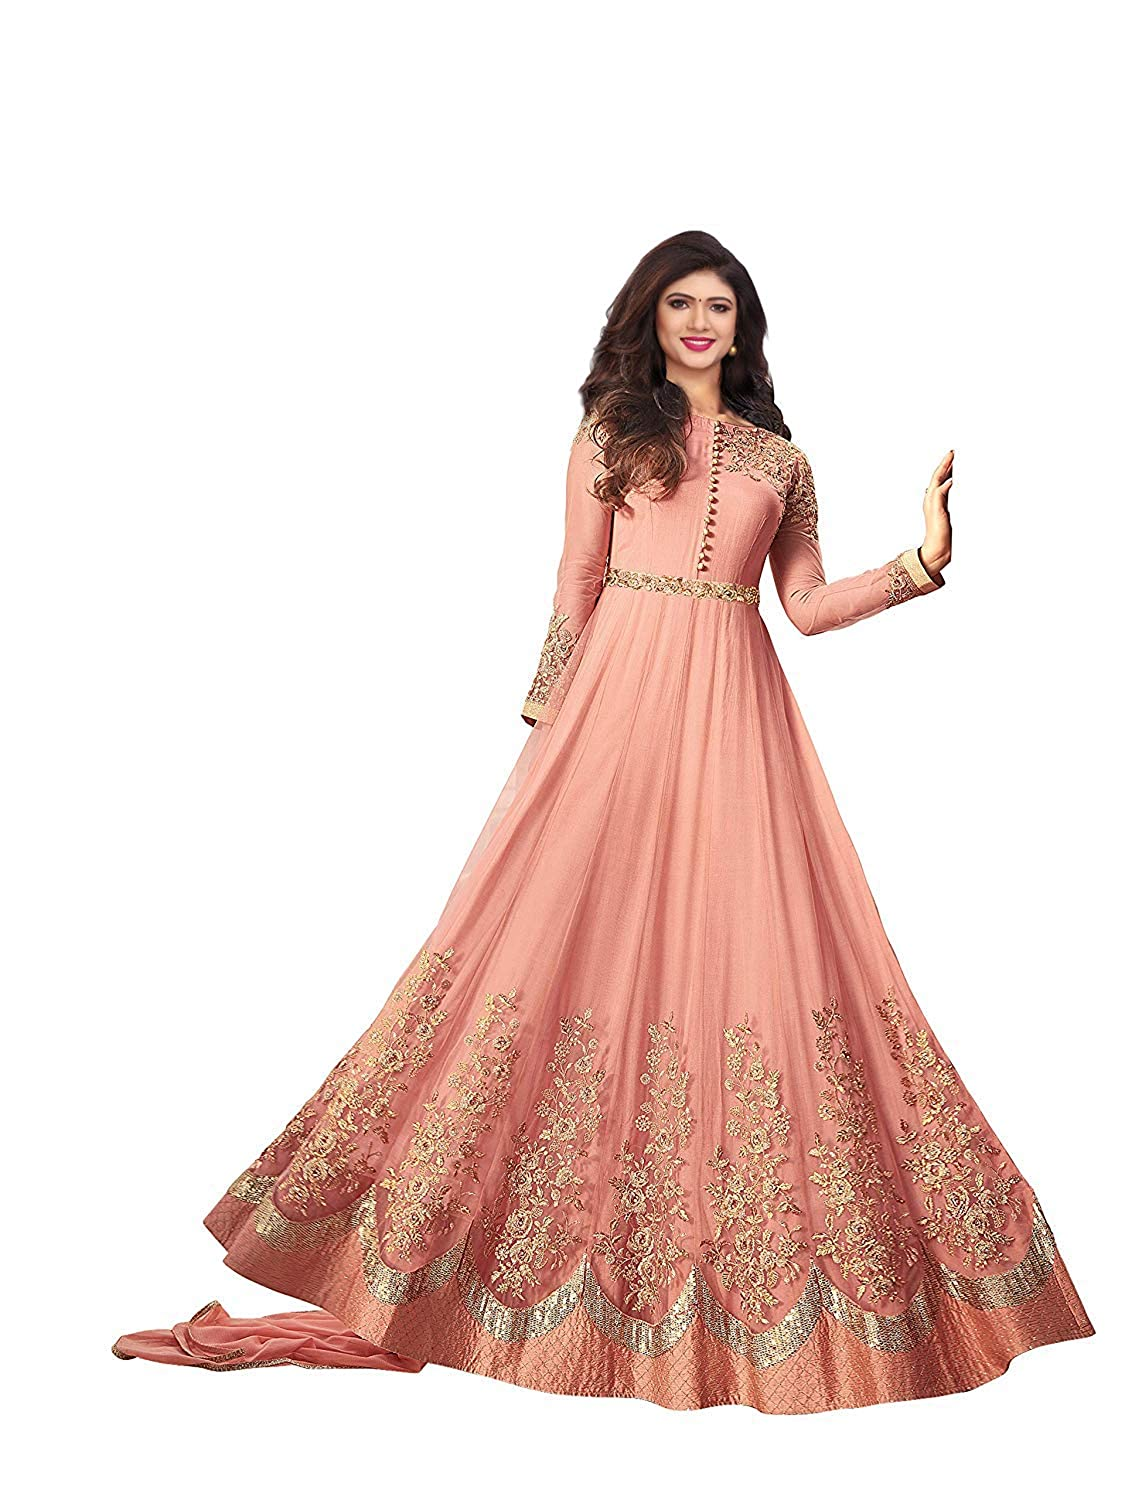 Royal Export Women's Net Floor length Party Wear Readymade Gown